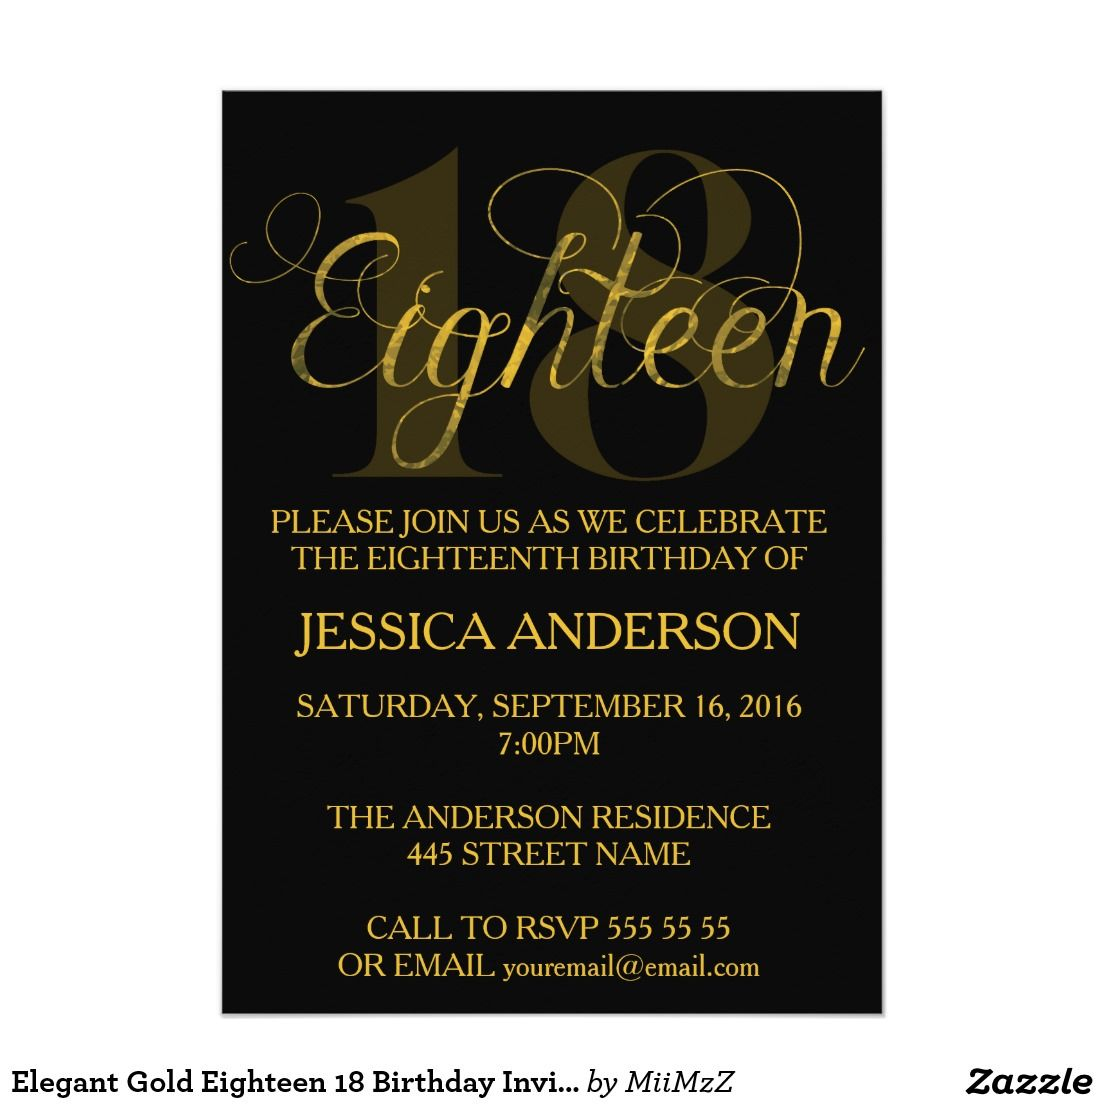 39th birthday party invitation wording ; edde9f138cc9ee41c21a7686b3416191